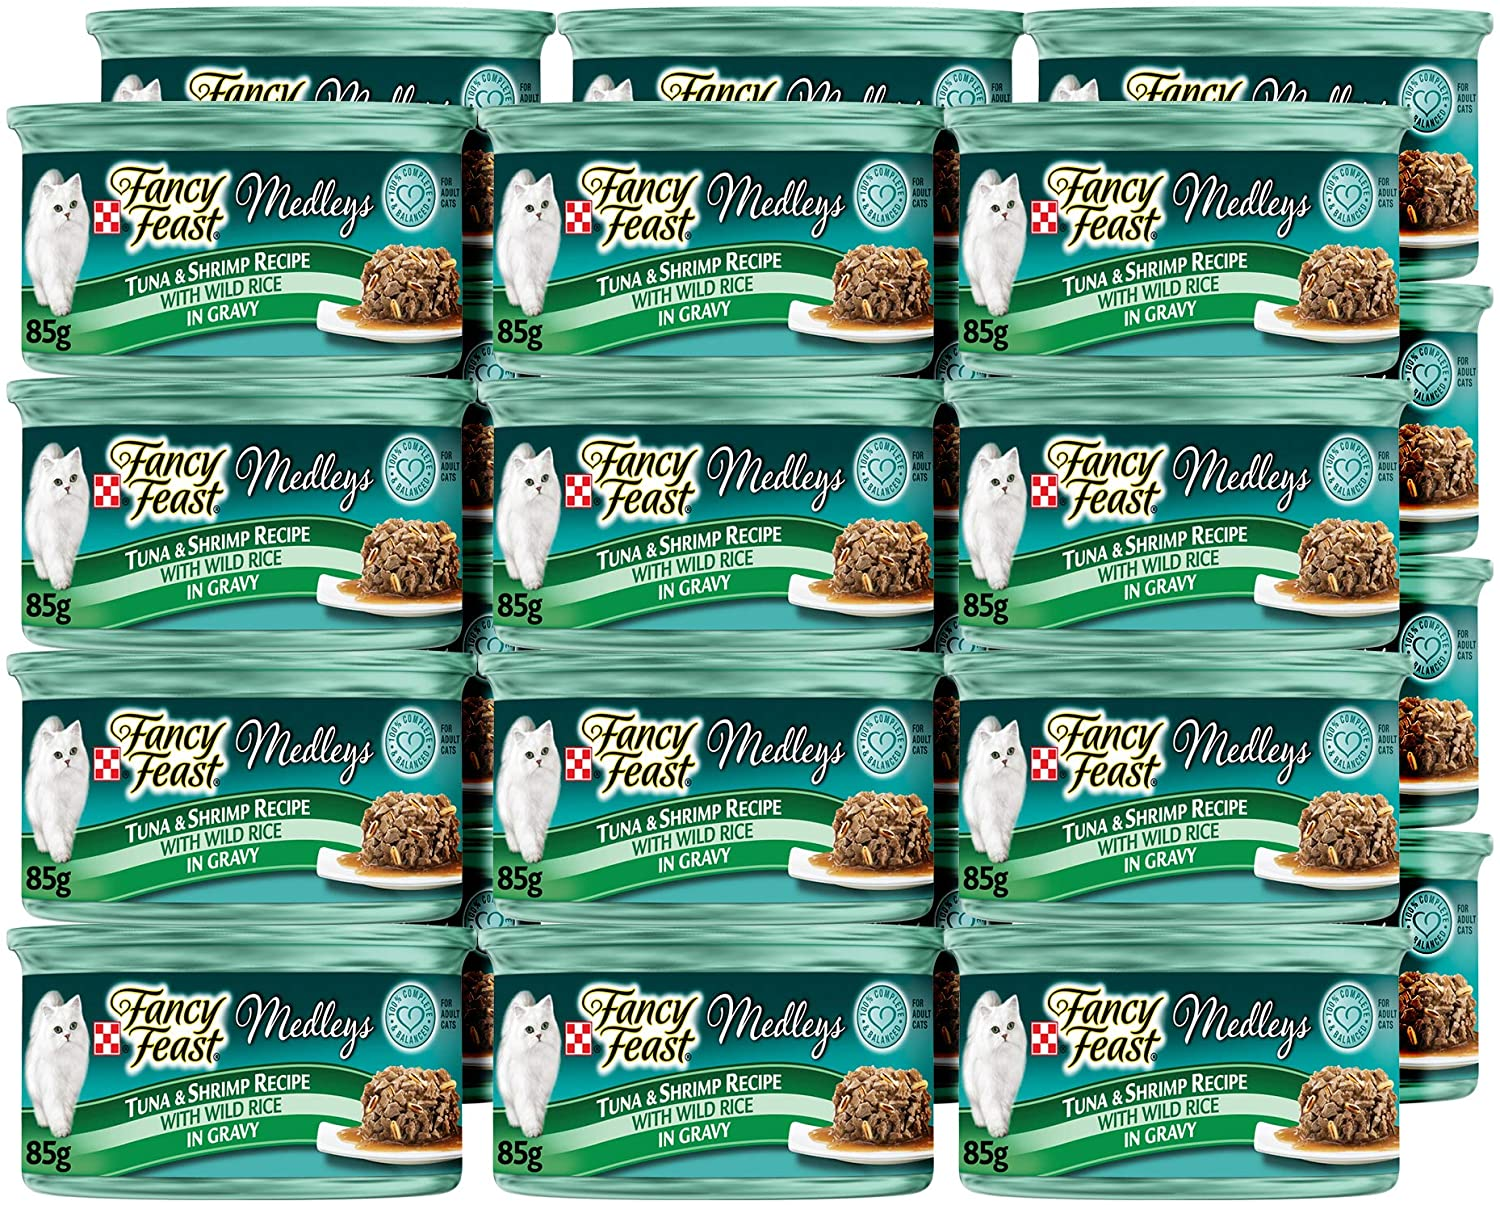 Purina Fancy Feast Gravy Wet Cat Food, Medleys Tuna & Shrimp Recipe With Wild Rice in Gravy - (24) 3 oz. Cans